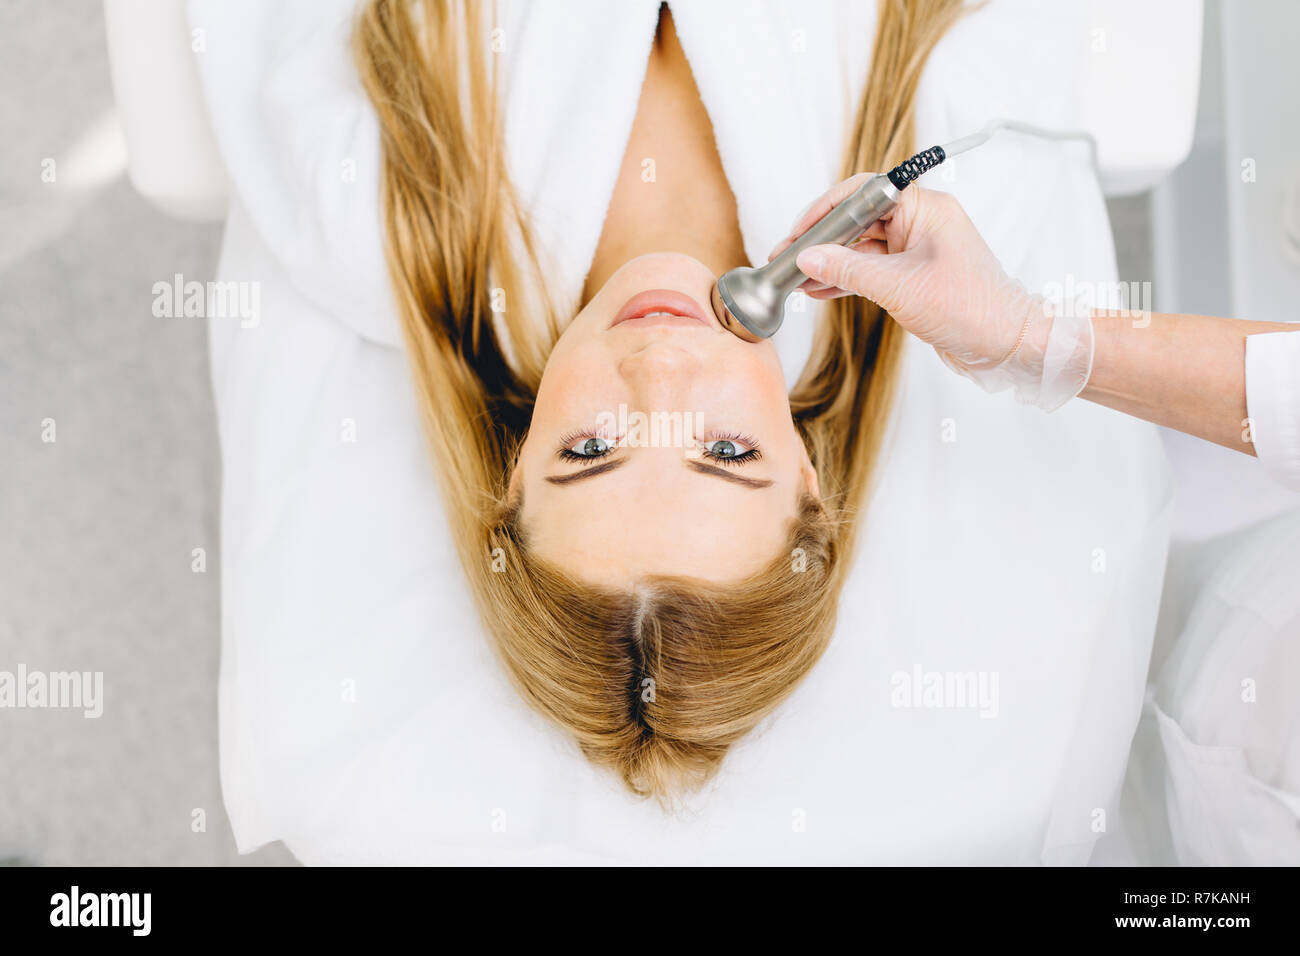 Blonde woman has ultrasonic dinamic lift massage in spa, hardware apparatus. - Stock Image